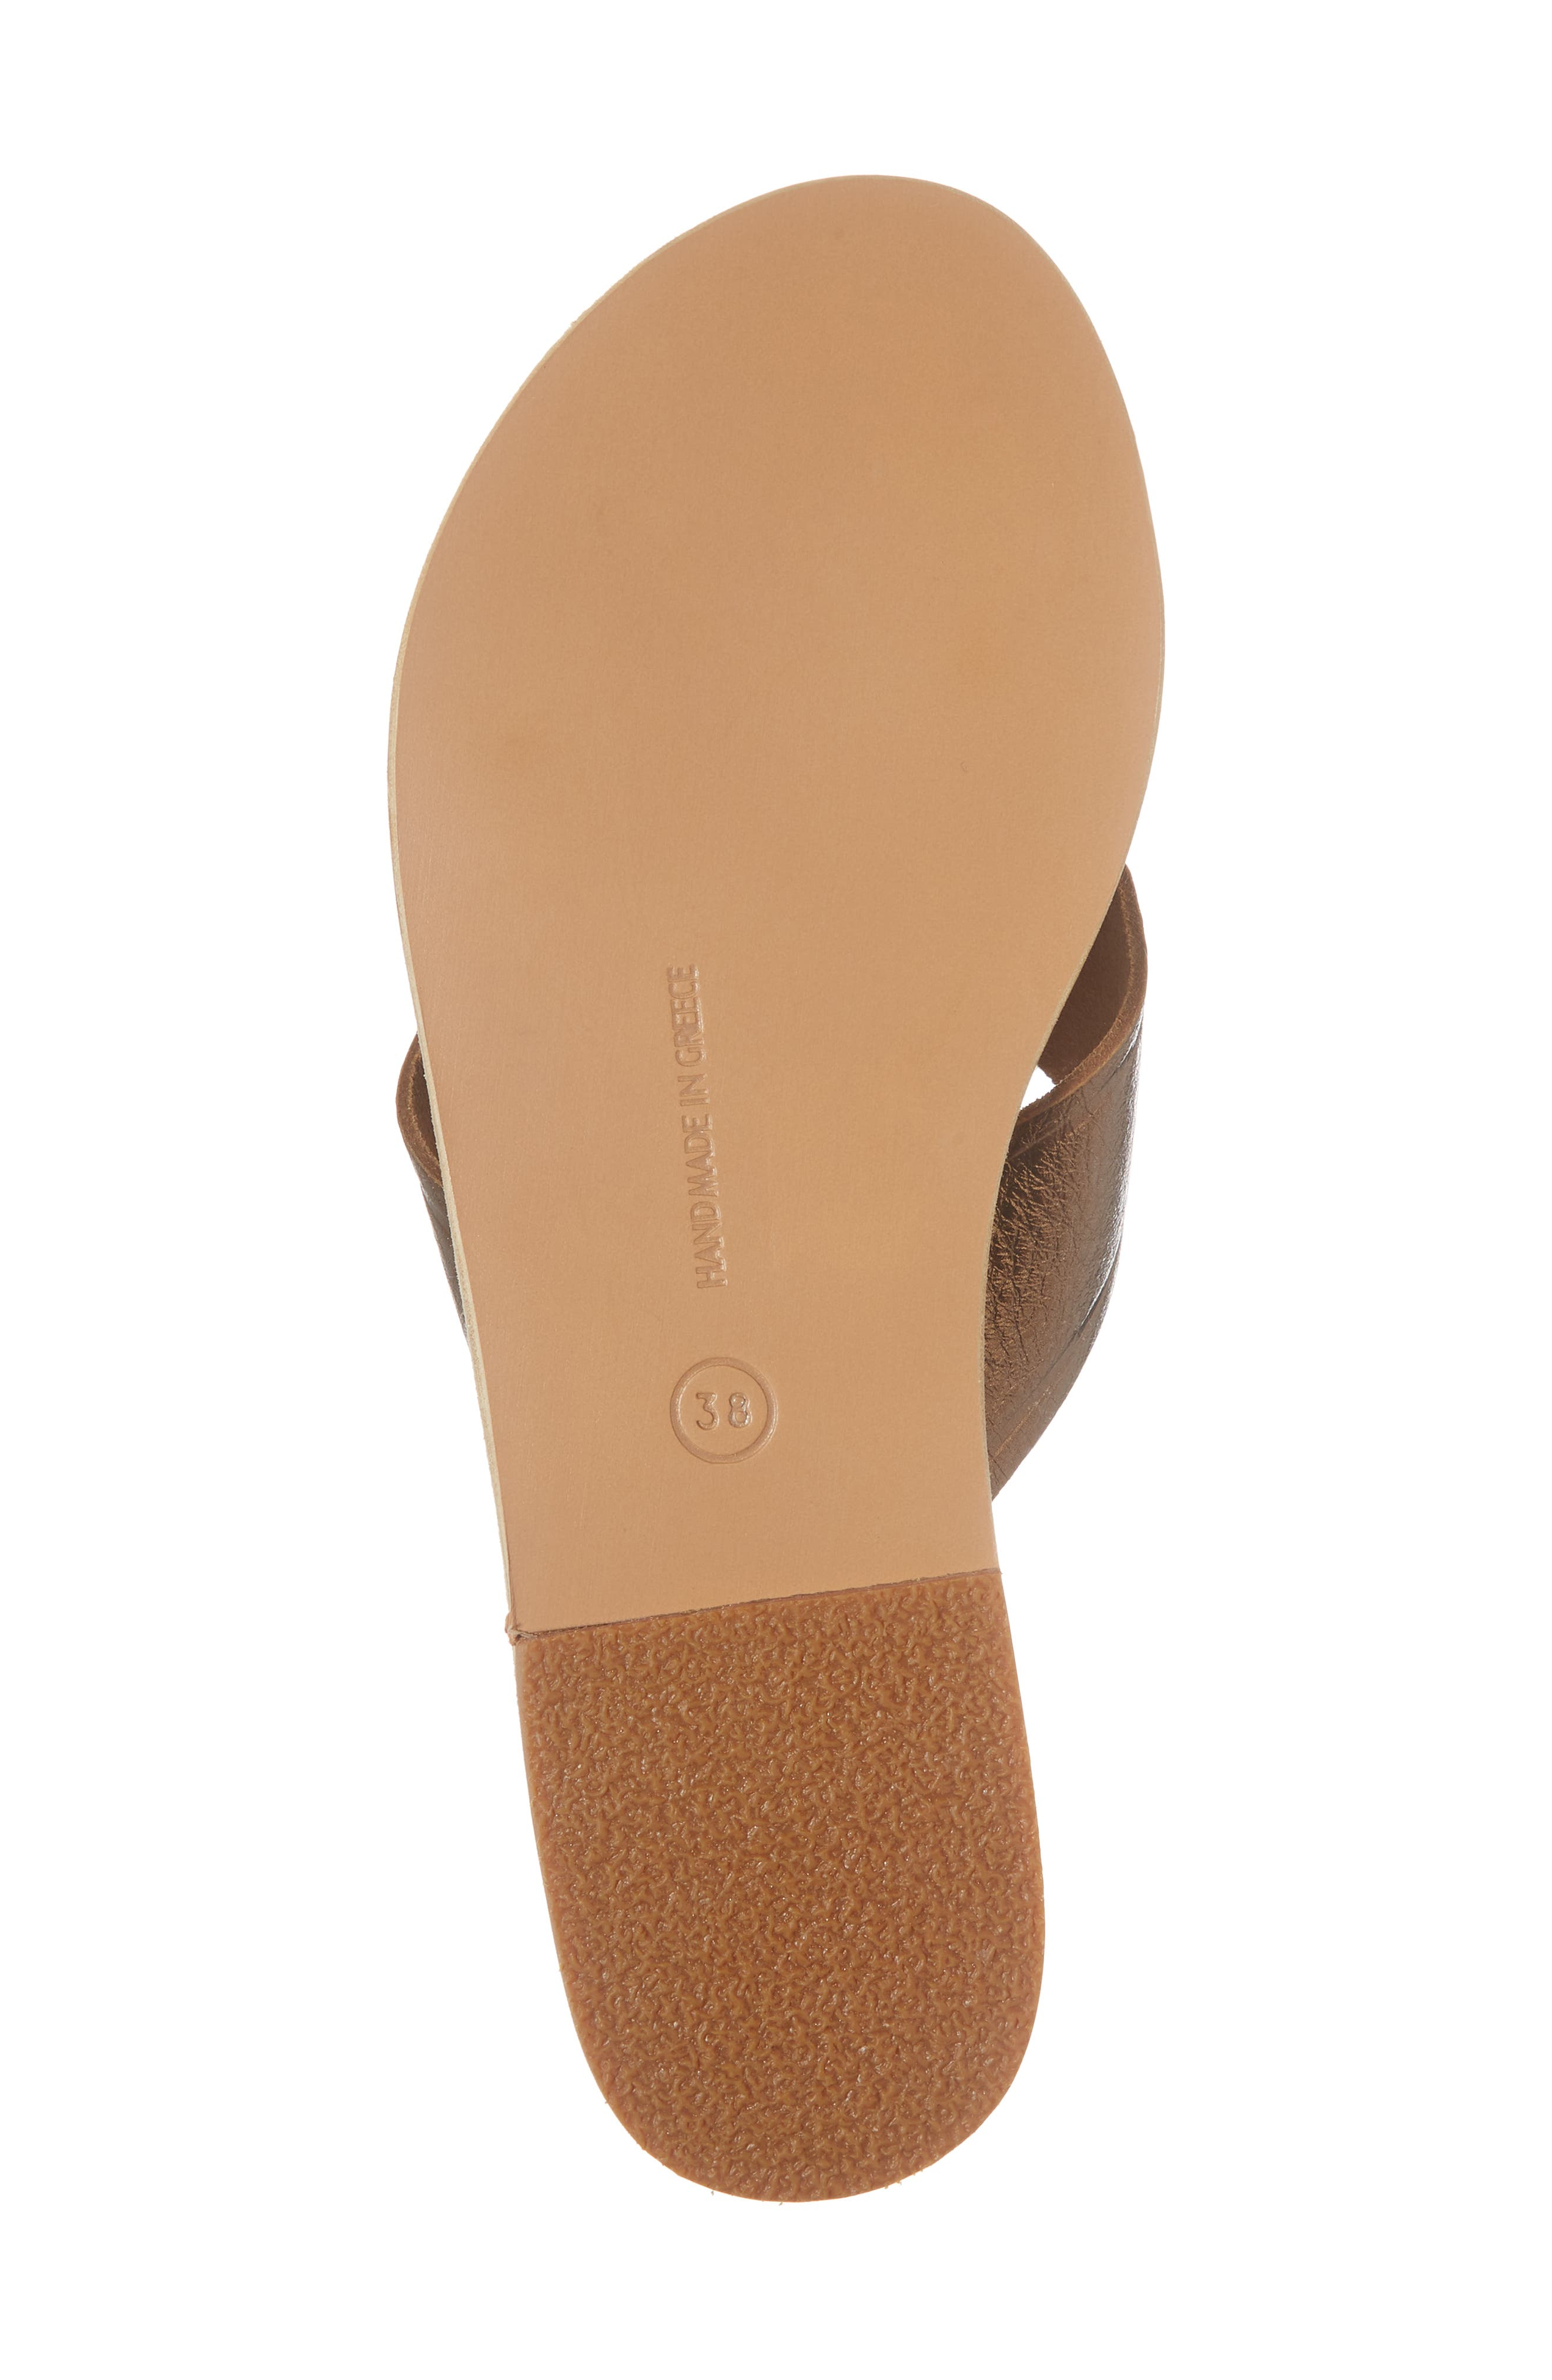 Thais Slide Sandal,                             Alternate thumbnail 6, color,                             Bronze/ Coco